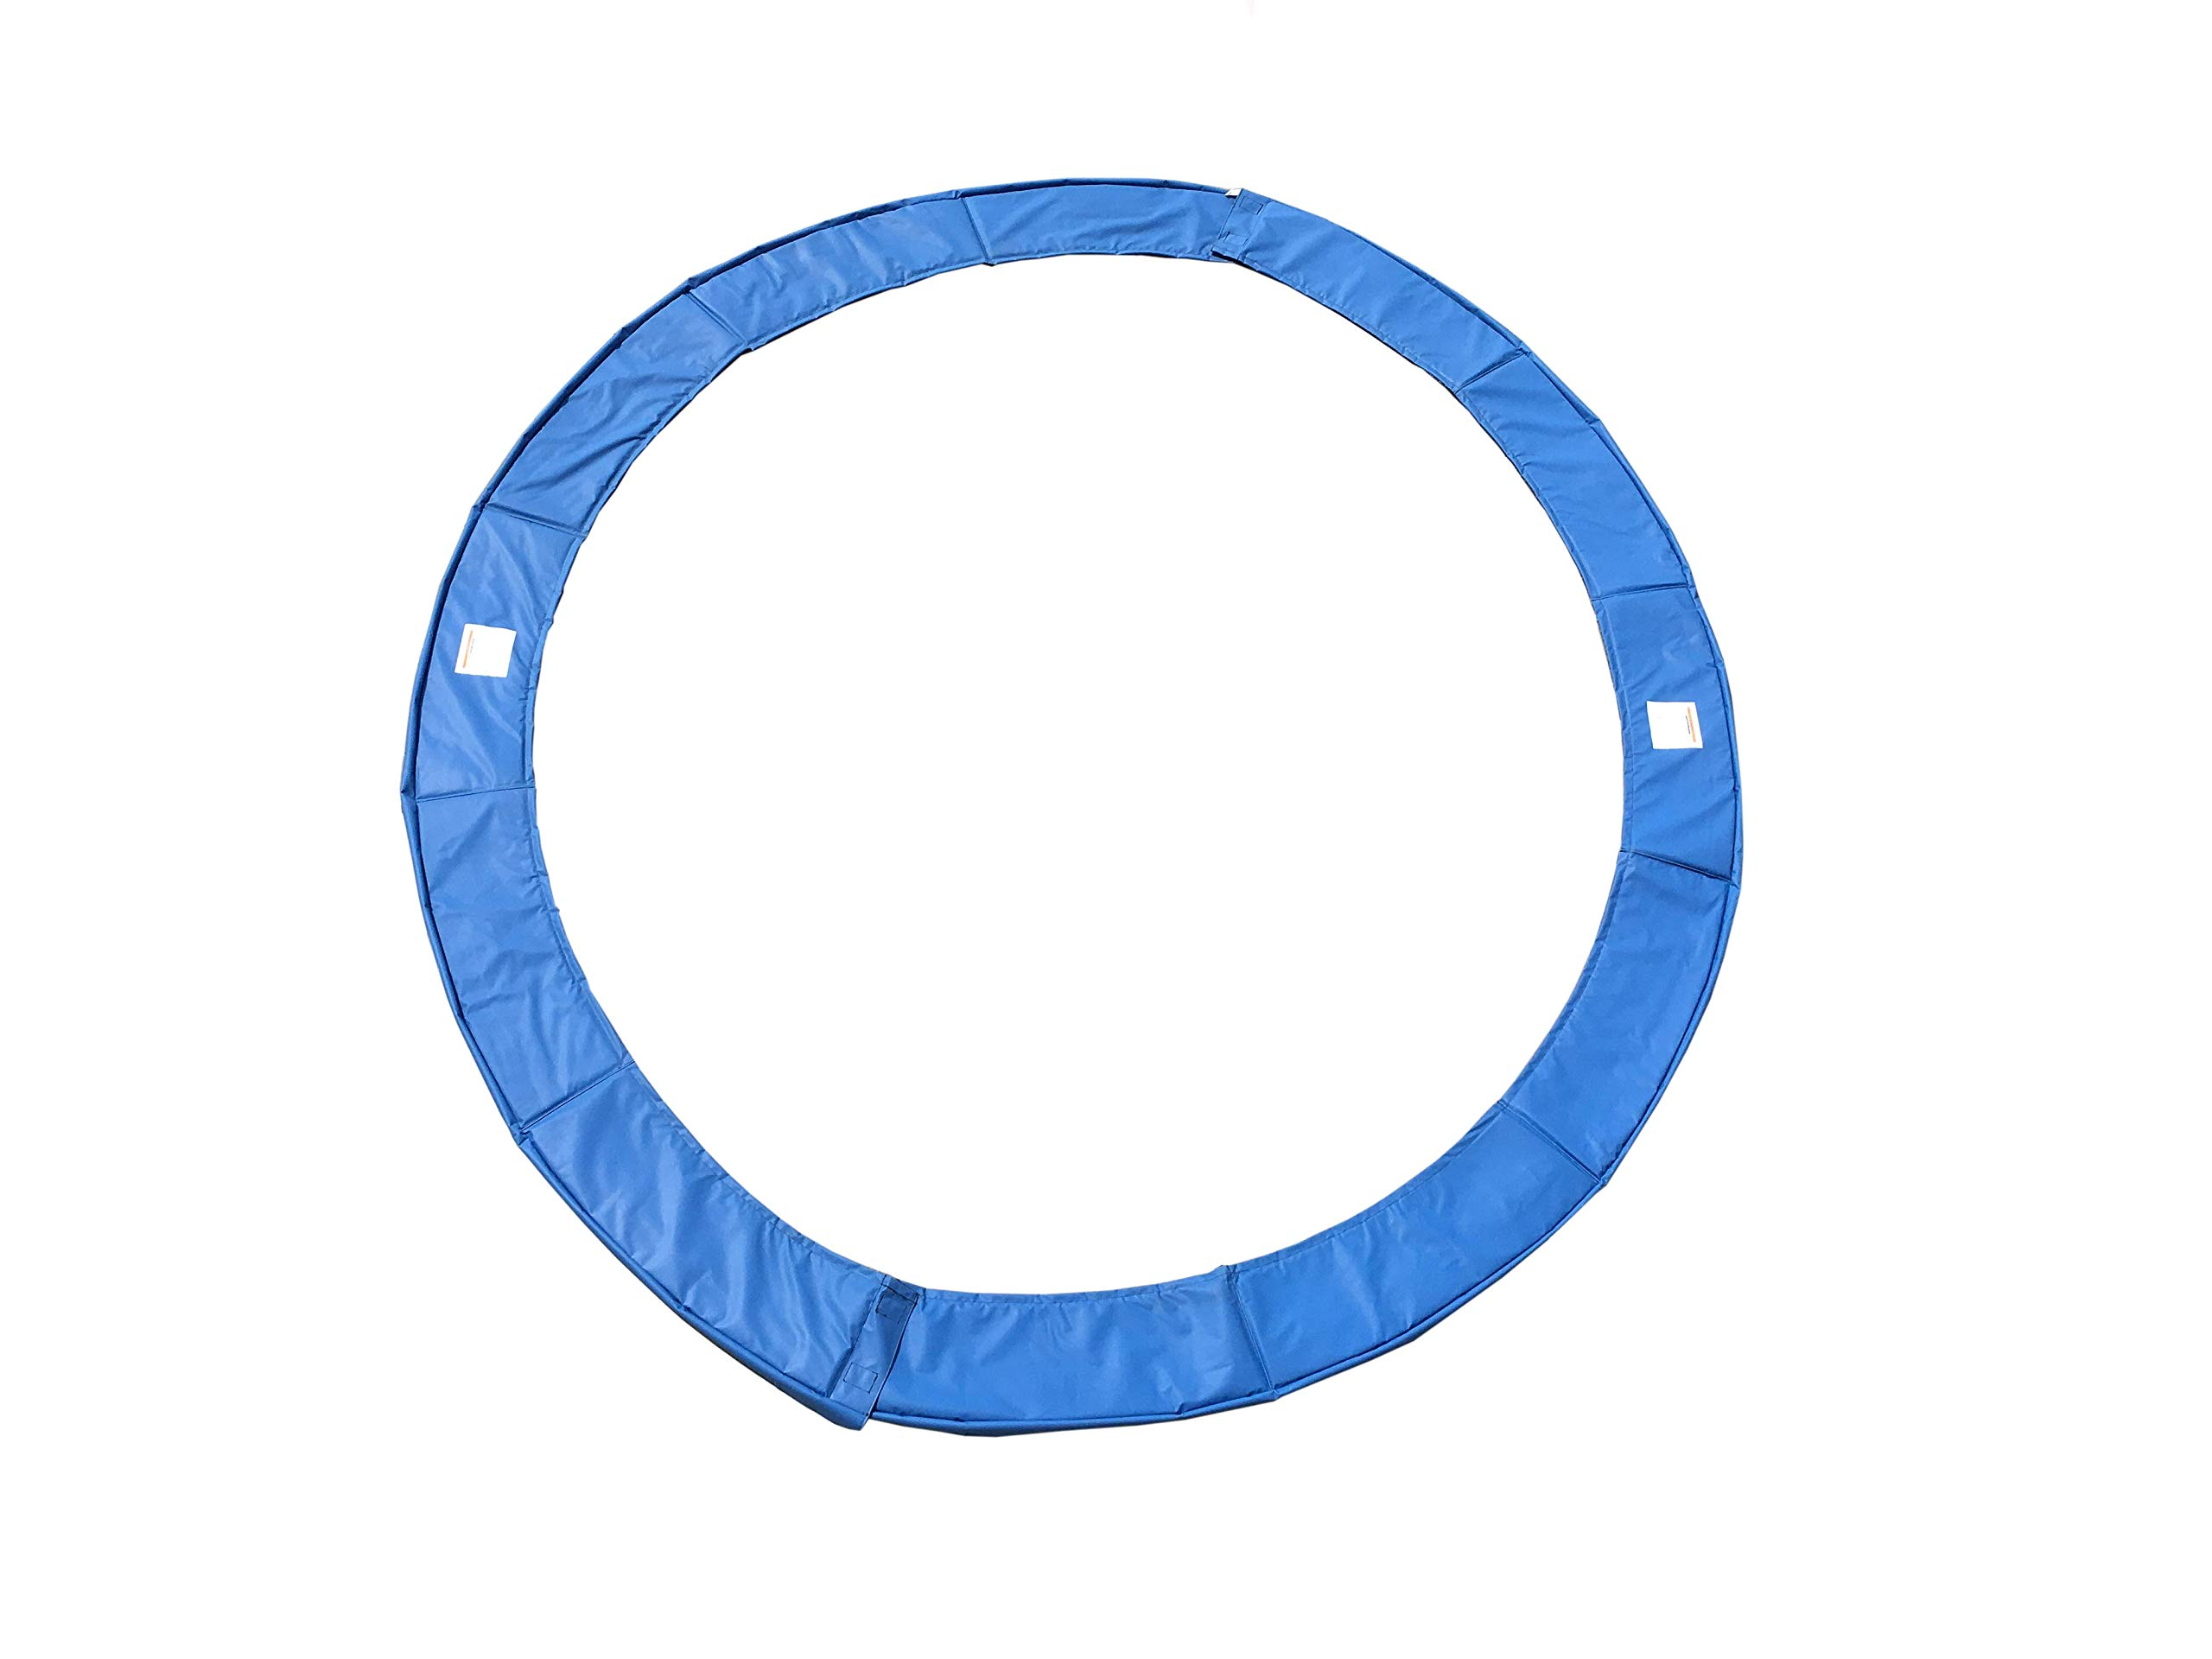 Trampoline Pads (Blue, 12 ft Round) by Trampoline Pro